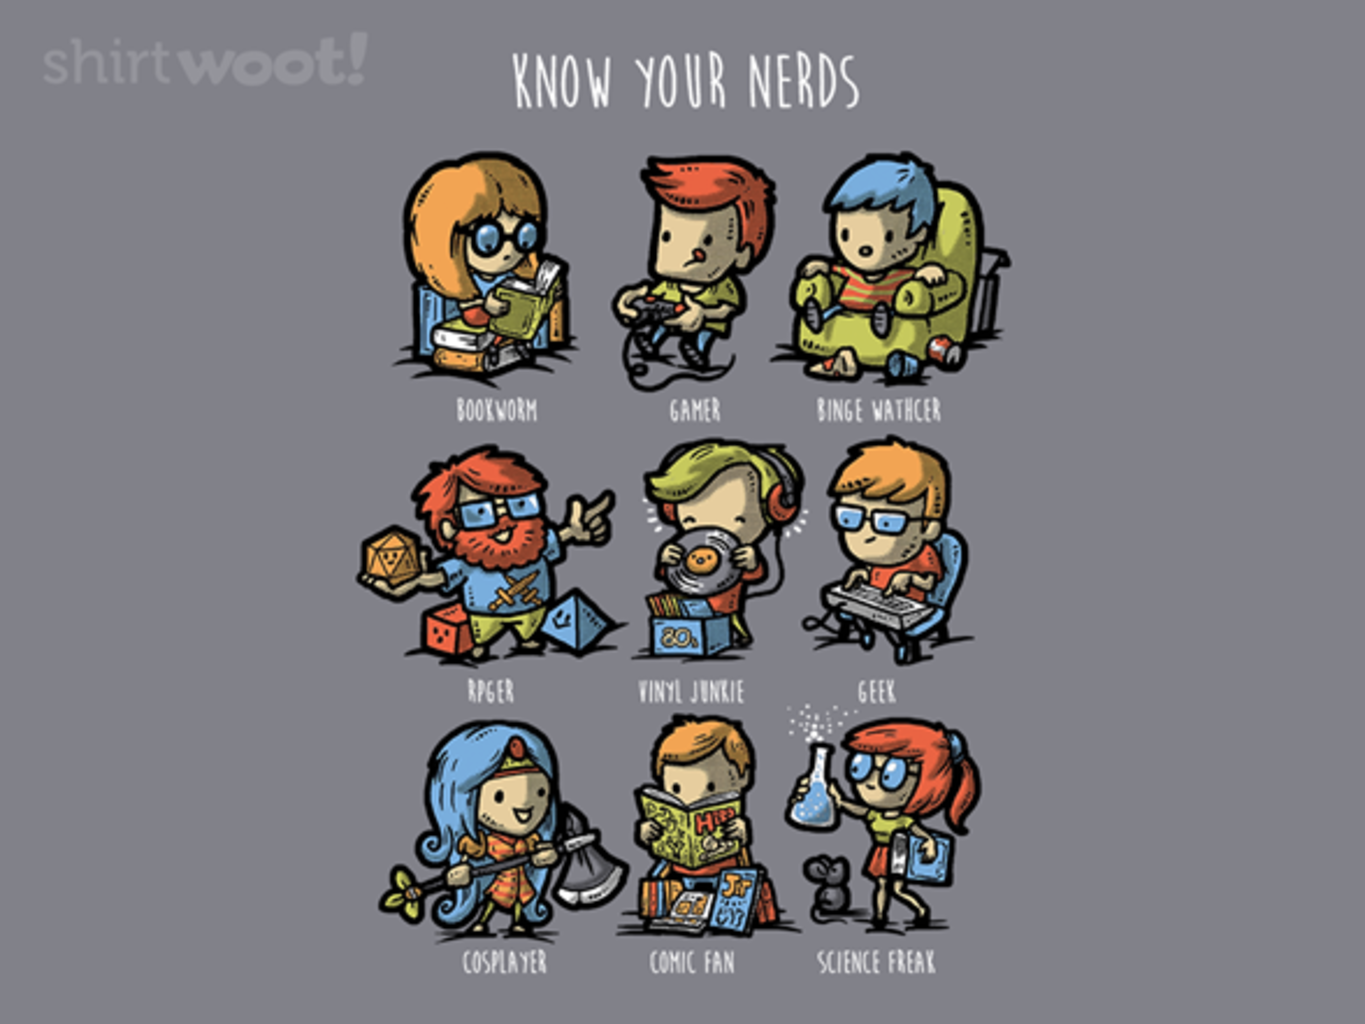 Woot!: Know Your Nerds